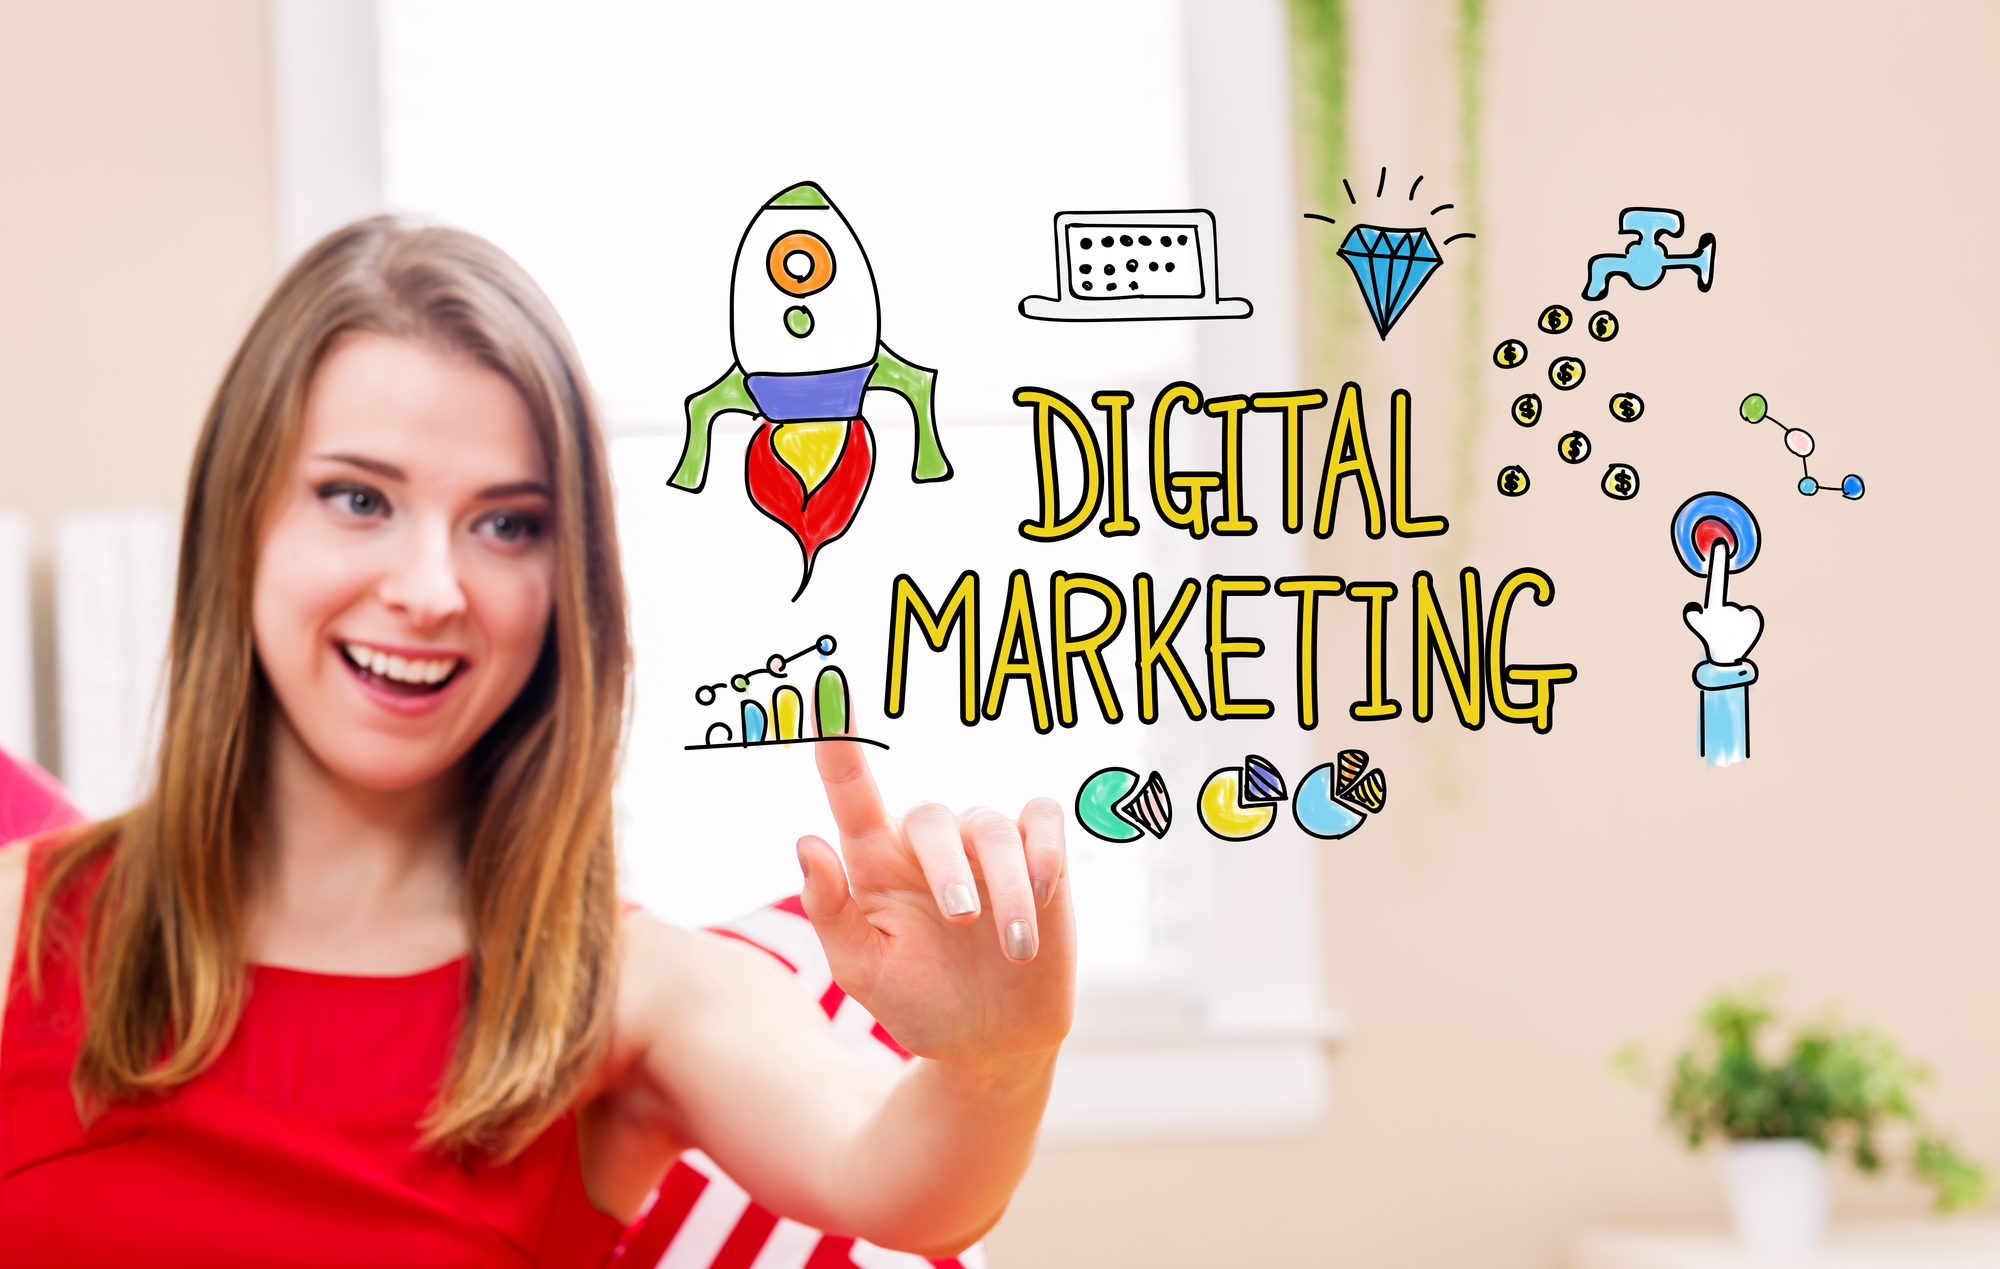 Digital Marketing concept with young woman in her home